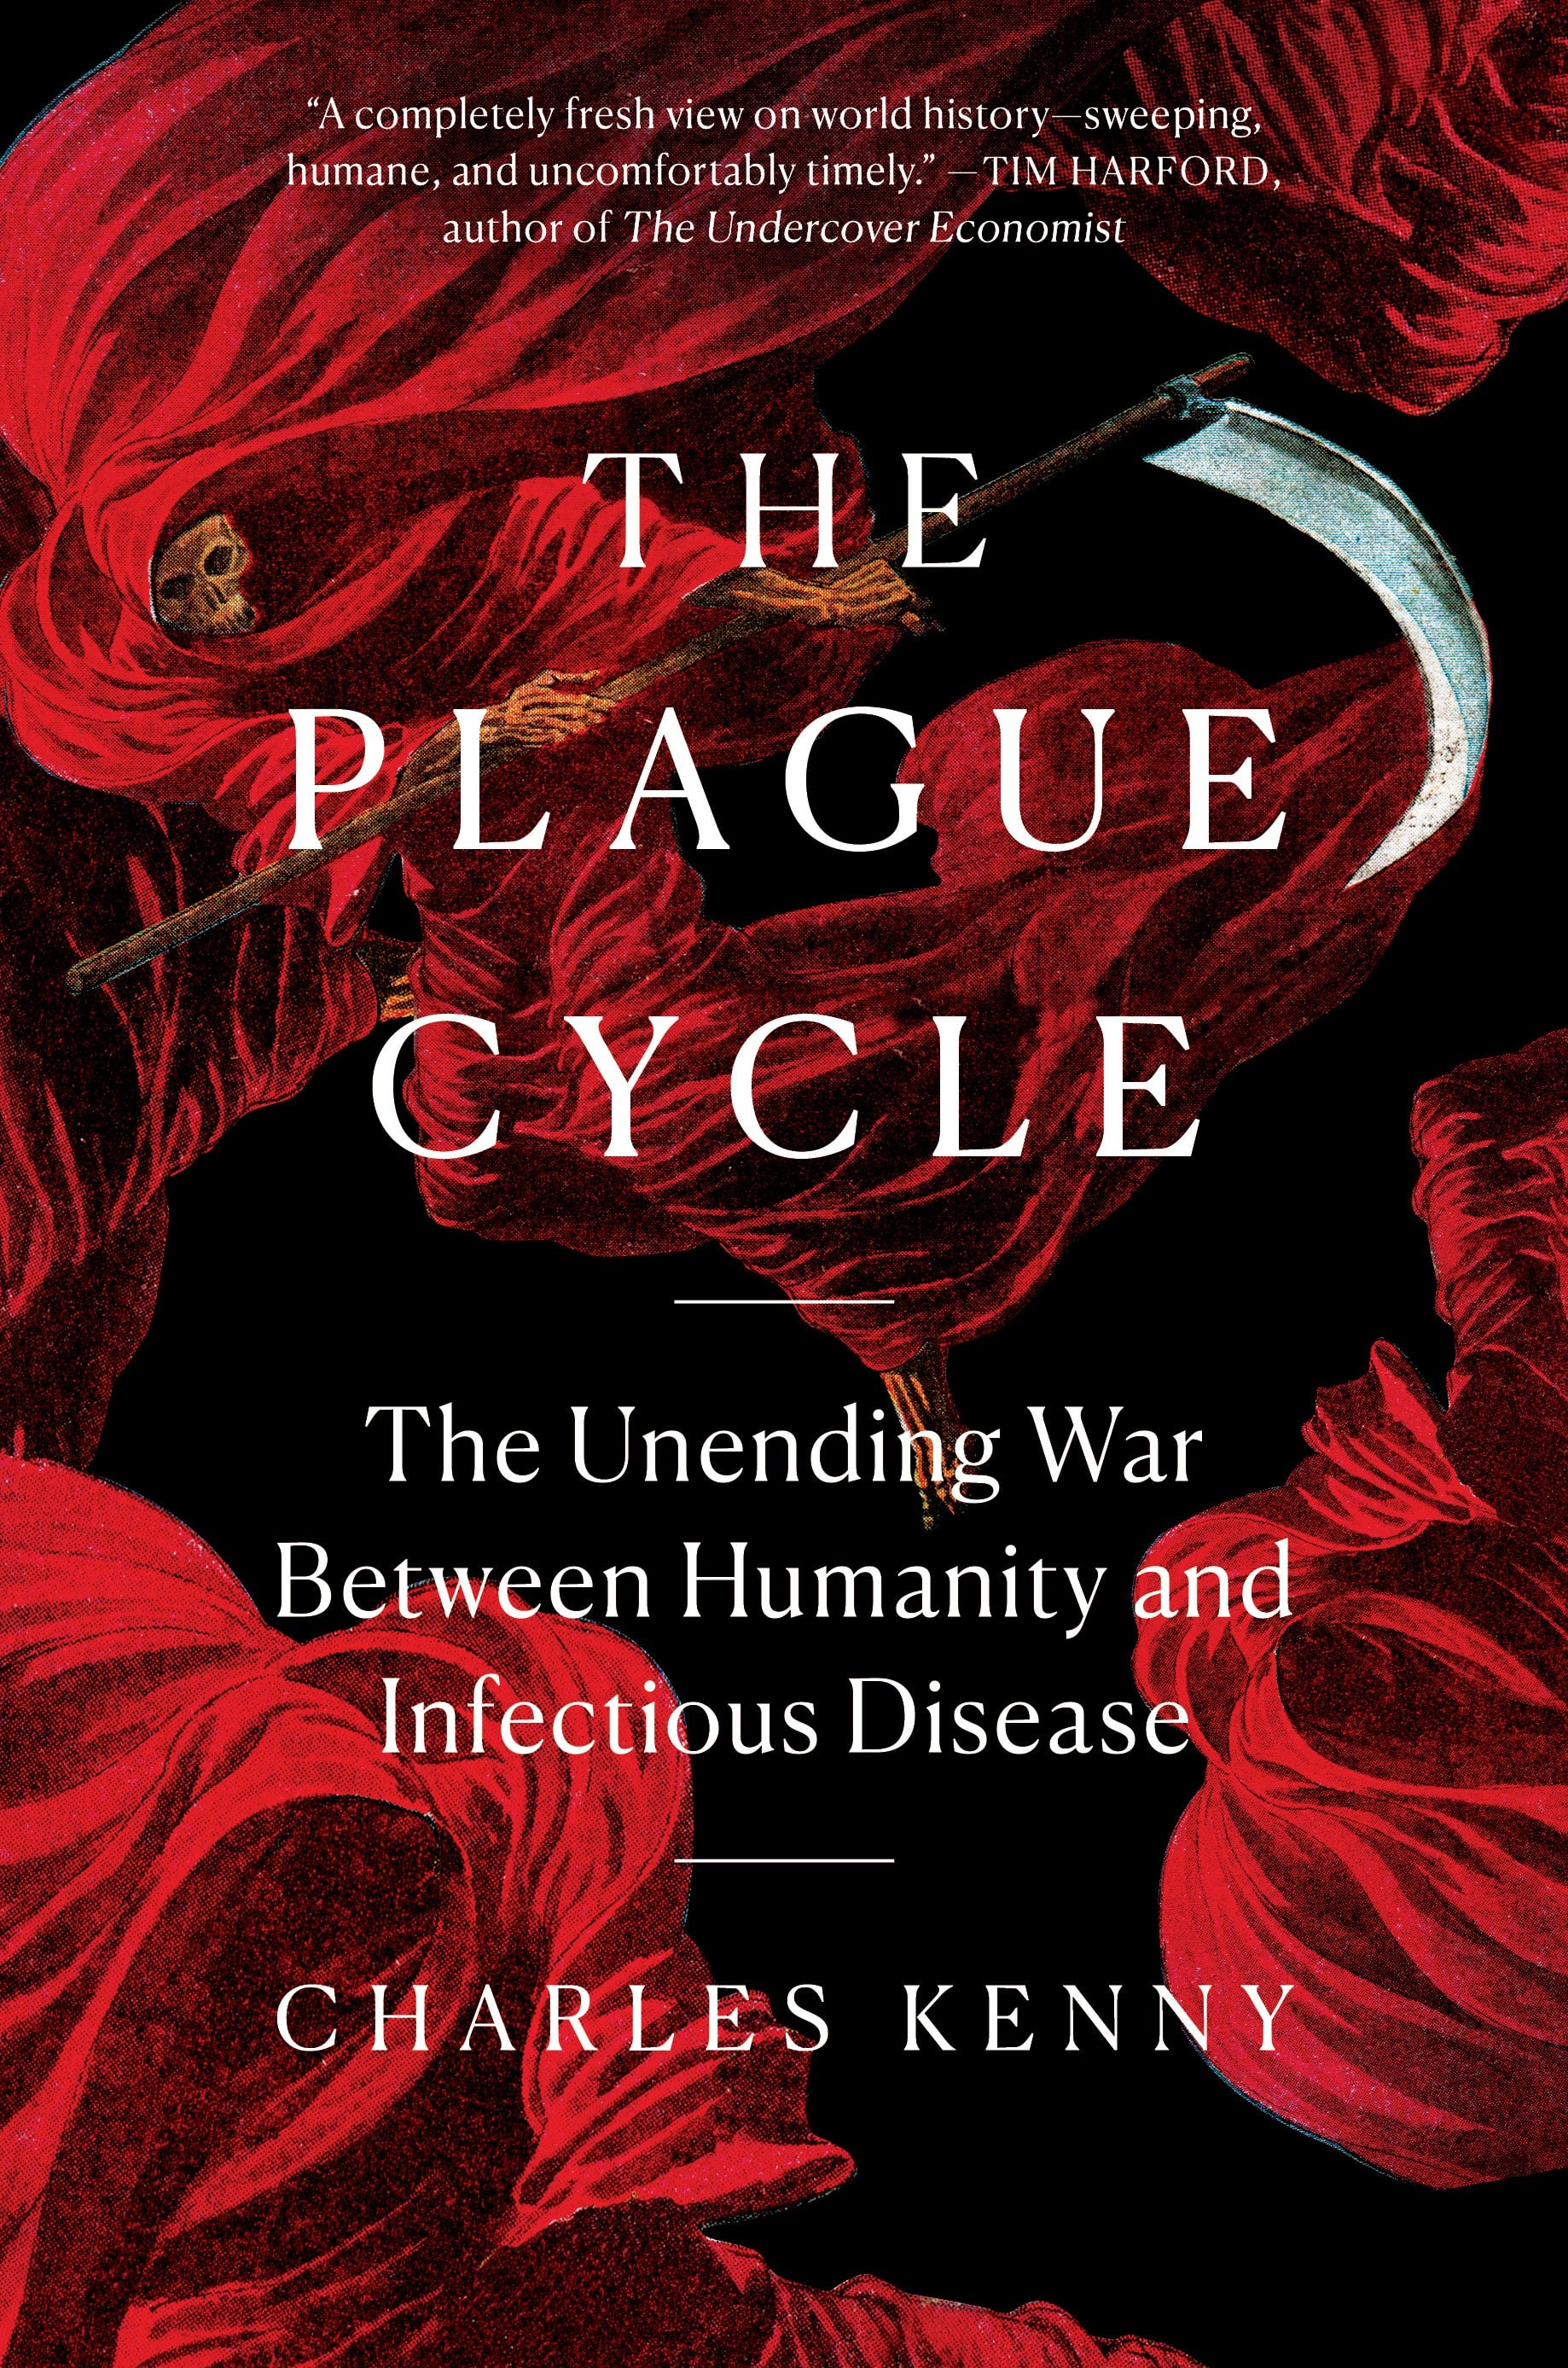 Excerpted from The plague Cycle: The Unending War Between Humanity and Infectious Disease by Charles Kenny. Copyright © 2021 by Charles Kenny with permission by Scribner, a division of Simon & Schuster, Inc.